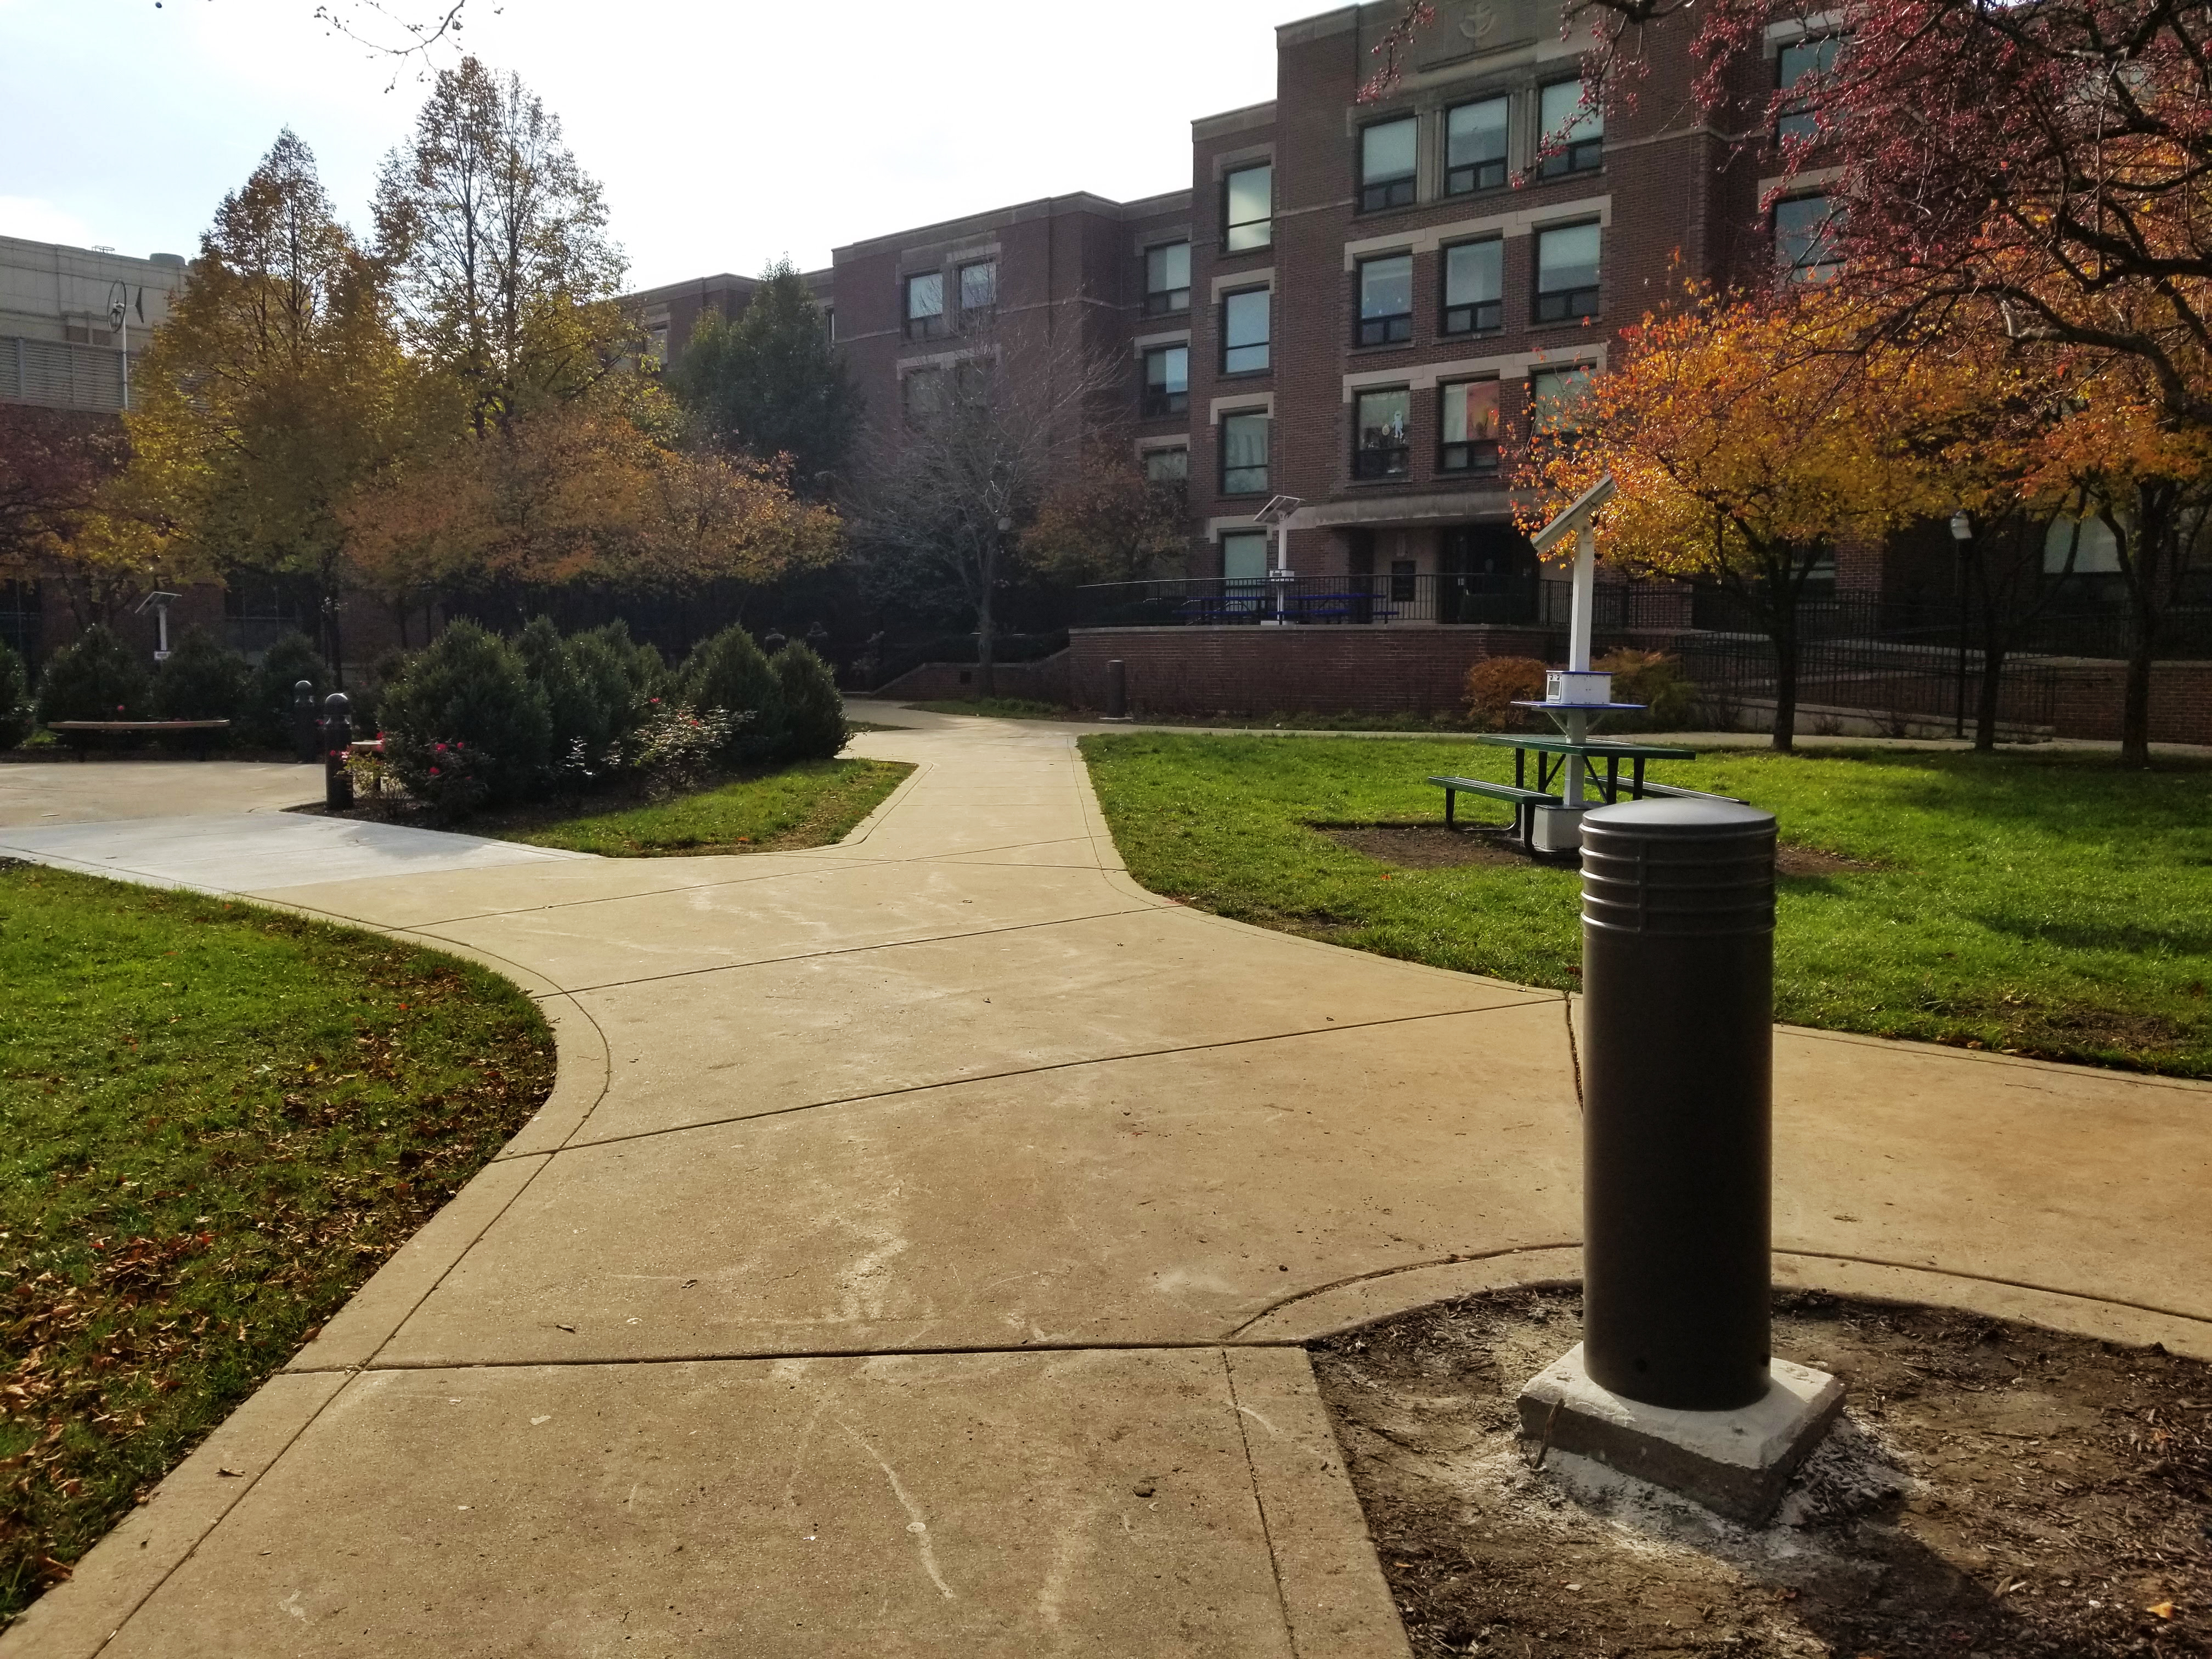 Posts in depaul quad for wireless internet